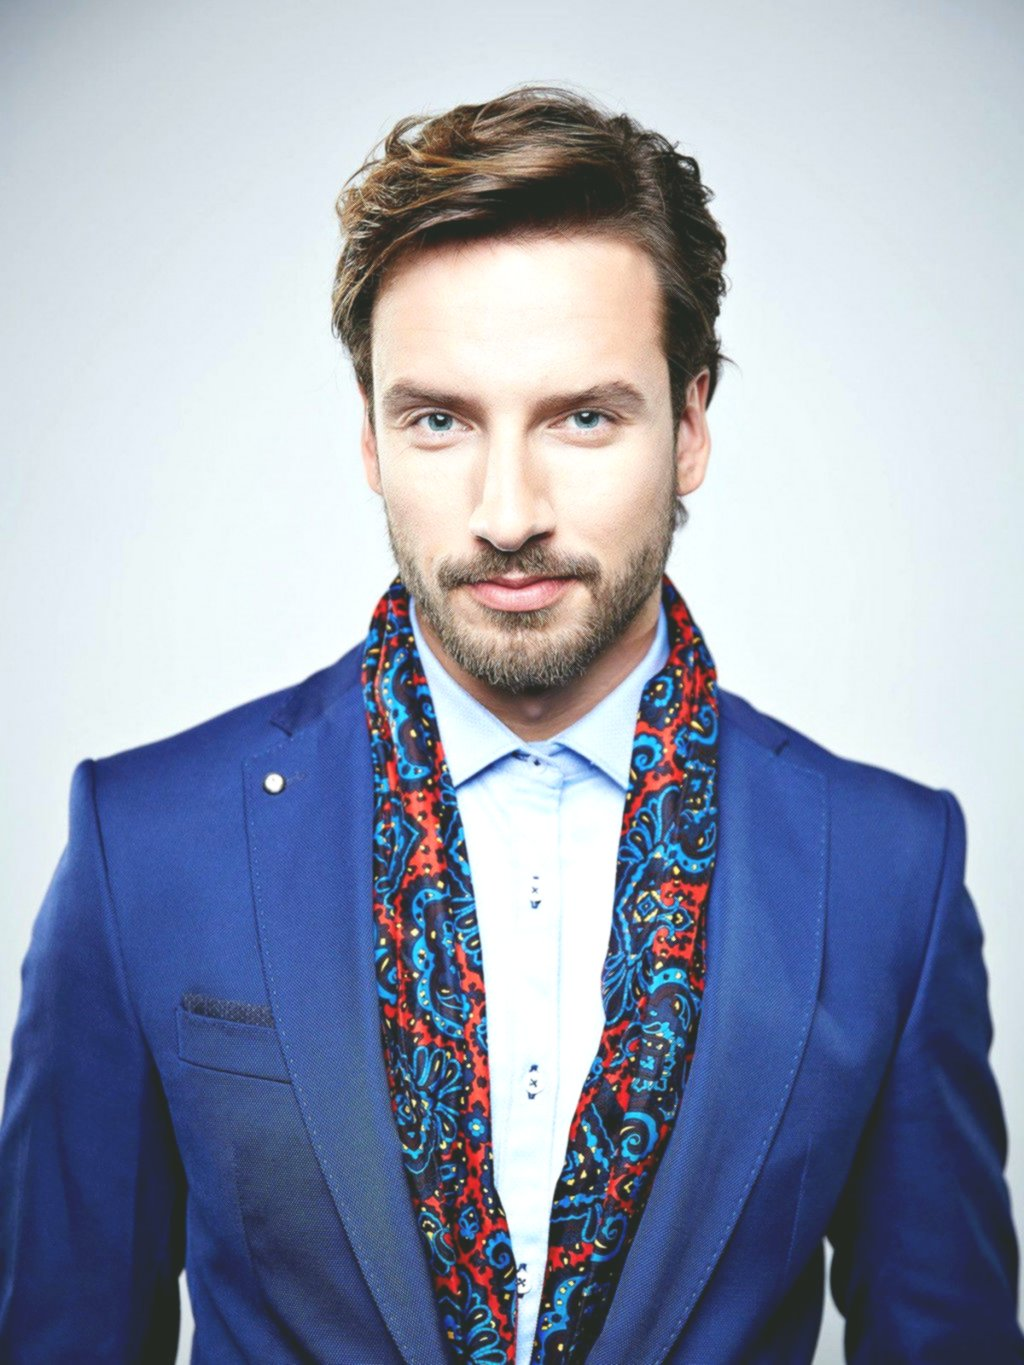 Stylish trendy hairstyles for guys pattern - Awesome Trendy Hairstyles For Boys Portrait